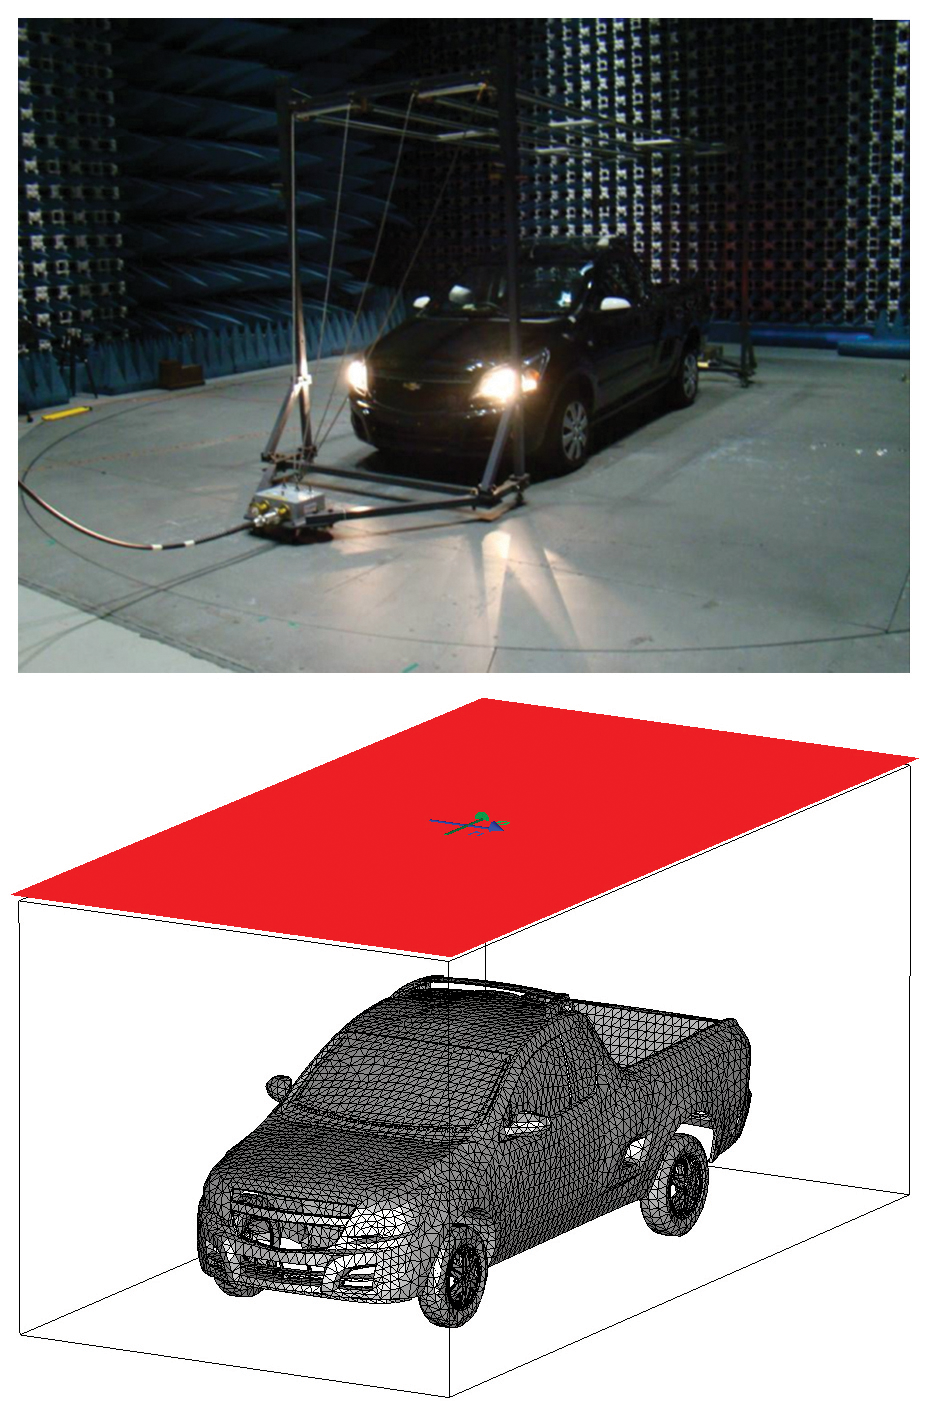 Figure7: (Top) Vehicle in the semi anechoic chamber excited by a stripline antenna and (bottom) its electromagnetic modeling.